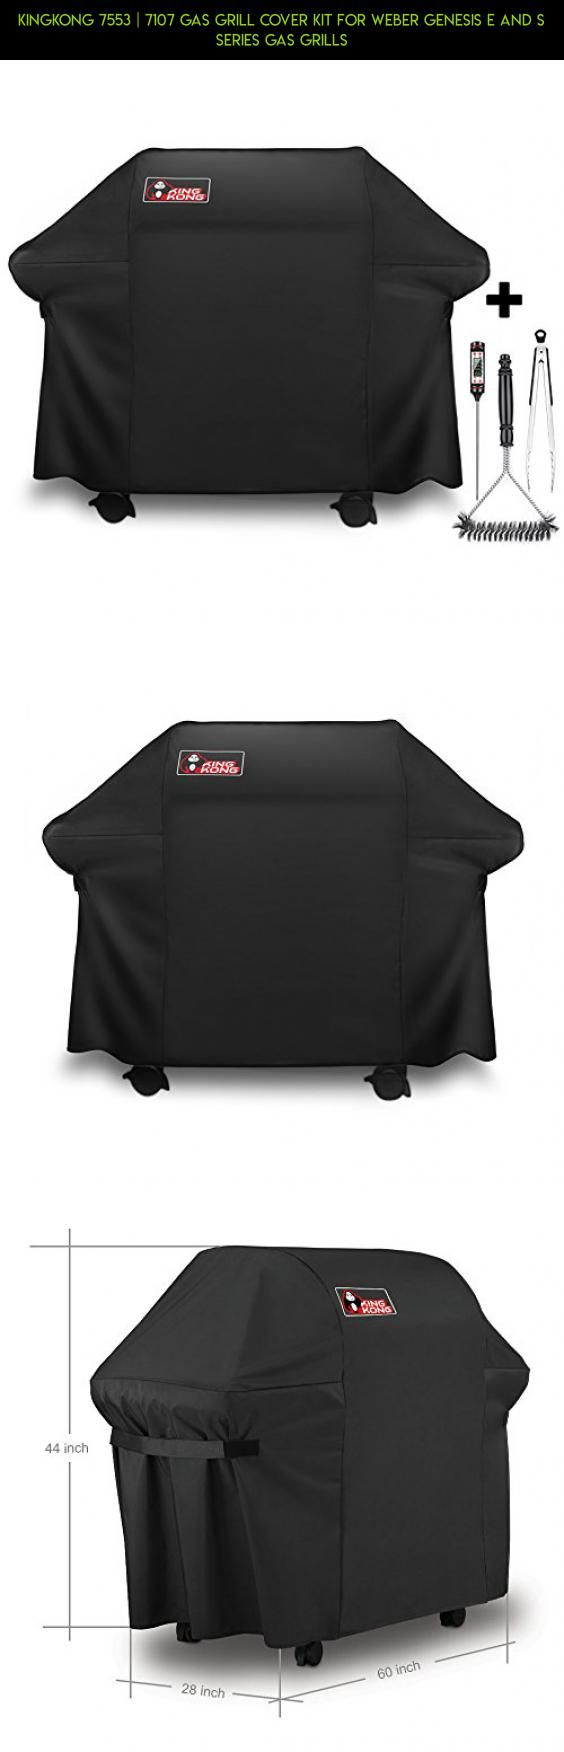 Kingkong 7553 | 7107 Gas Grill Cover Kit for Weber Genesis E and S Series Gas Grills #shopping #plans #technology #parts #under #camera #products #tech #kit #drone #racing #gadgets #fpv #100 #grills